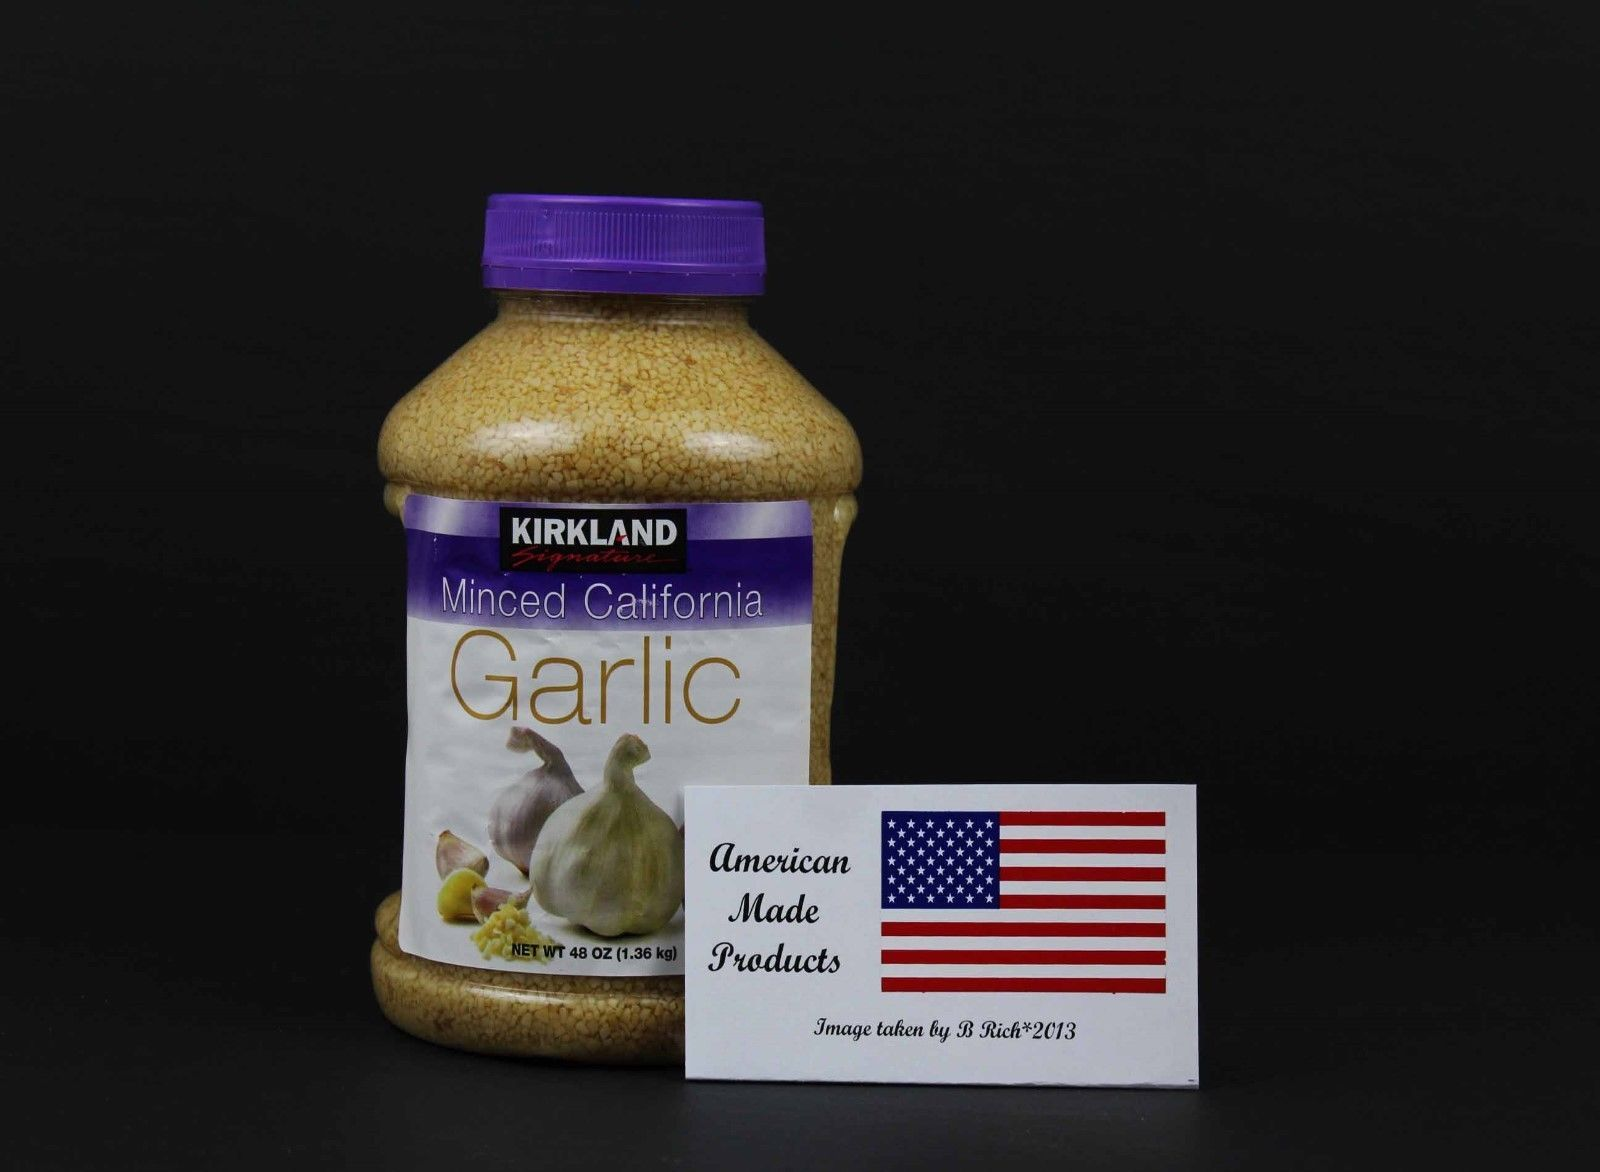 Primary image for 2 jars of Kirkland Signature Minced California Garlic, 48 Oz, FREE SHIPPING